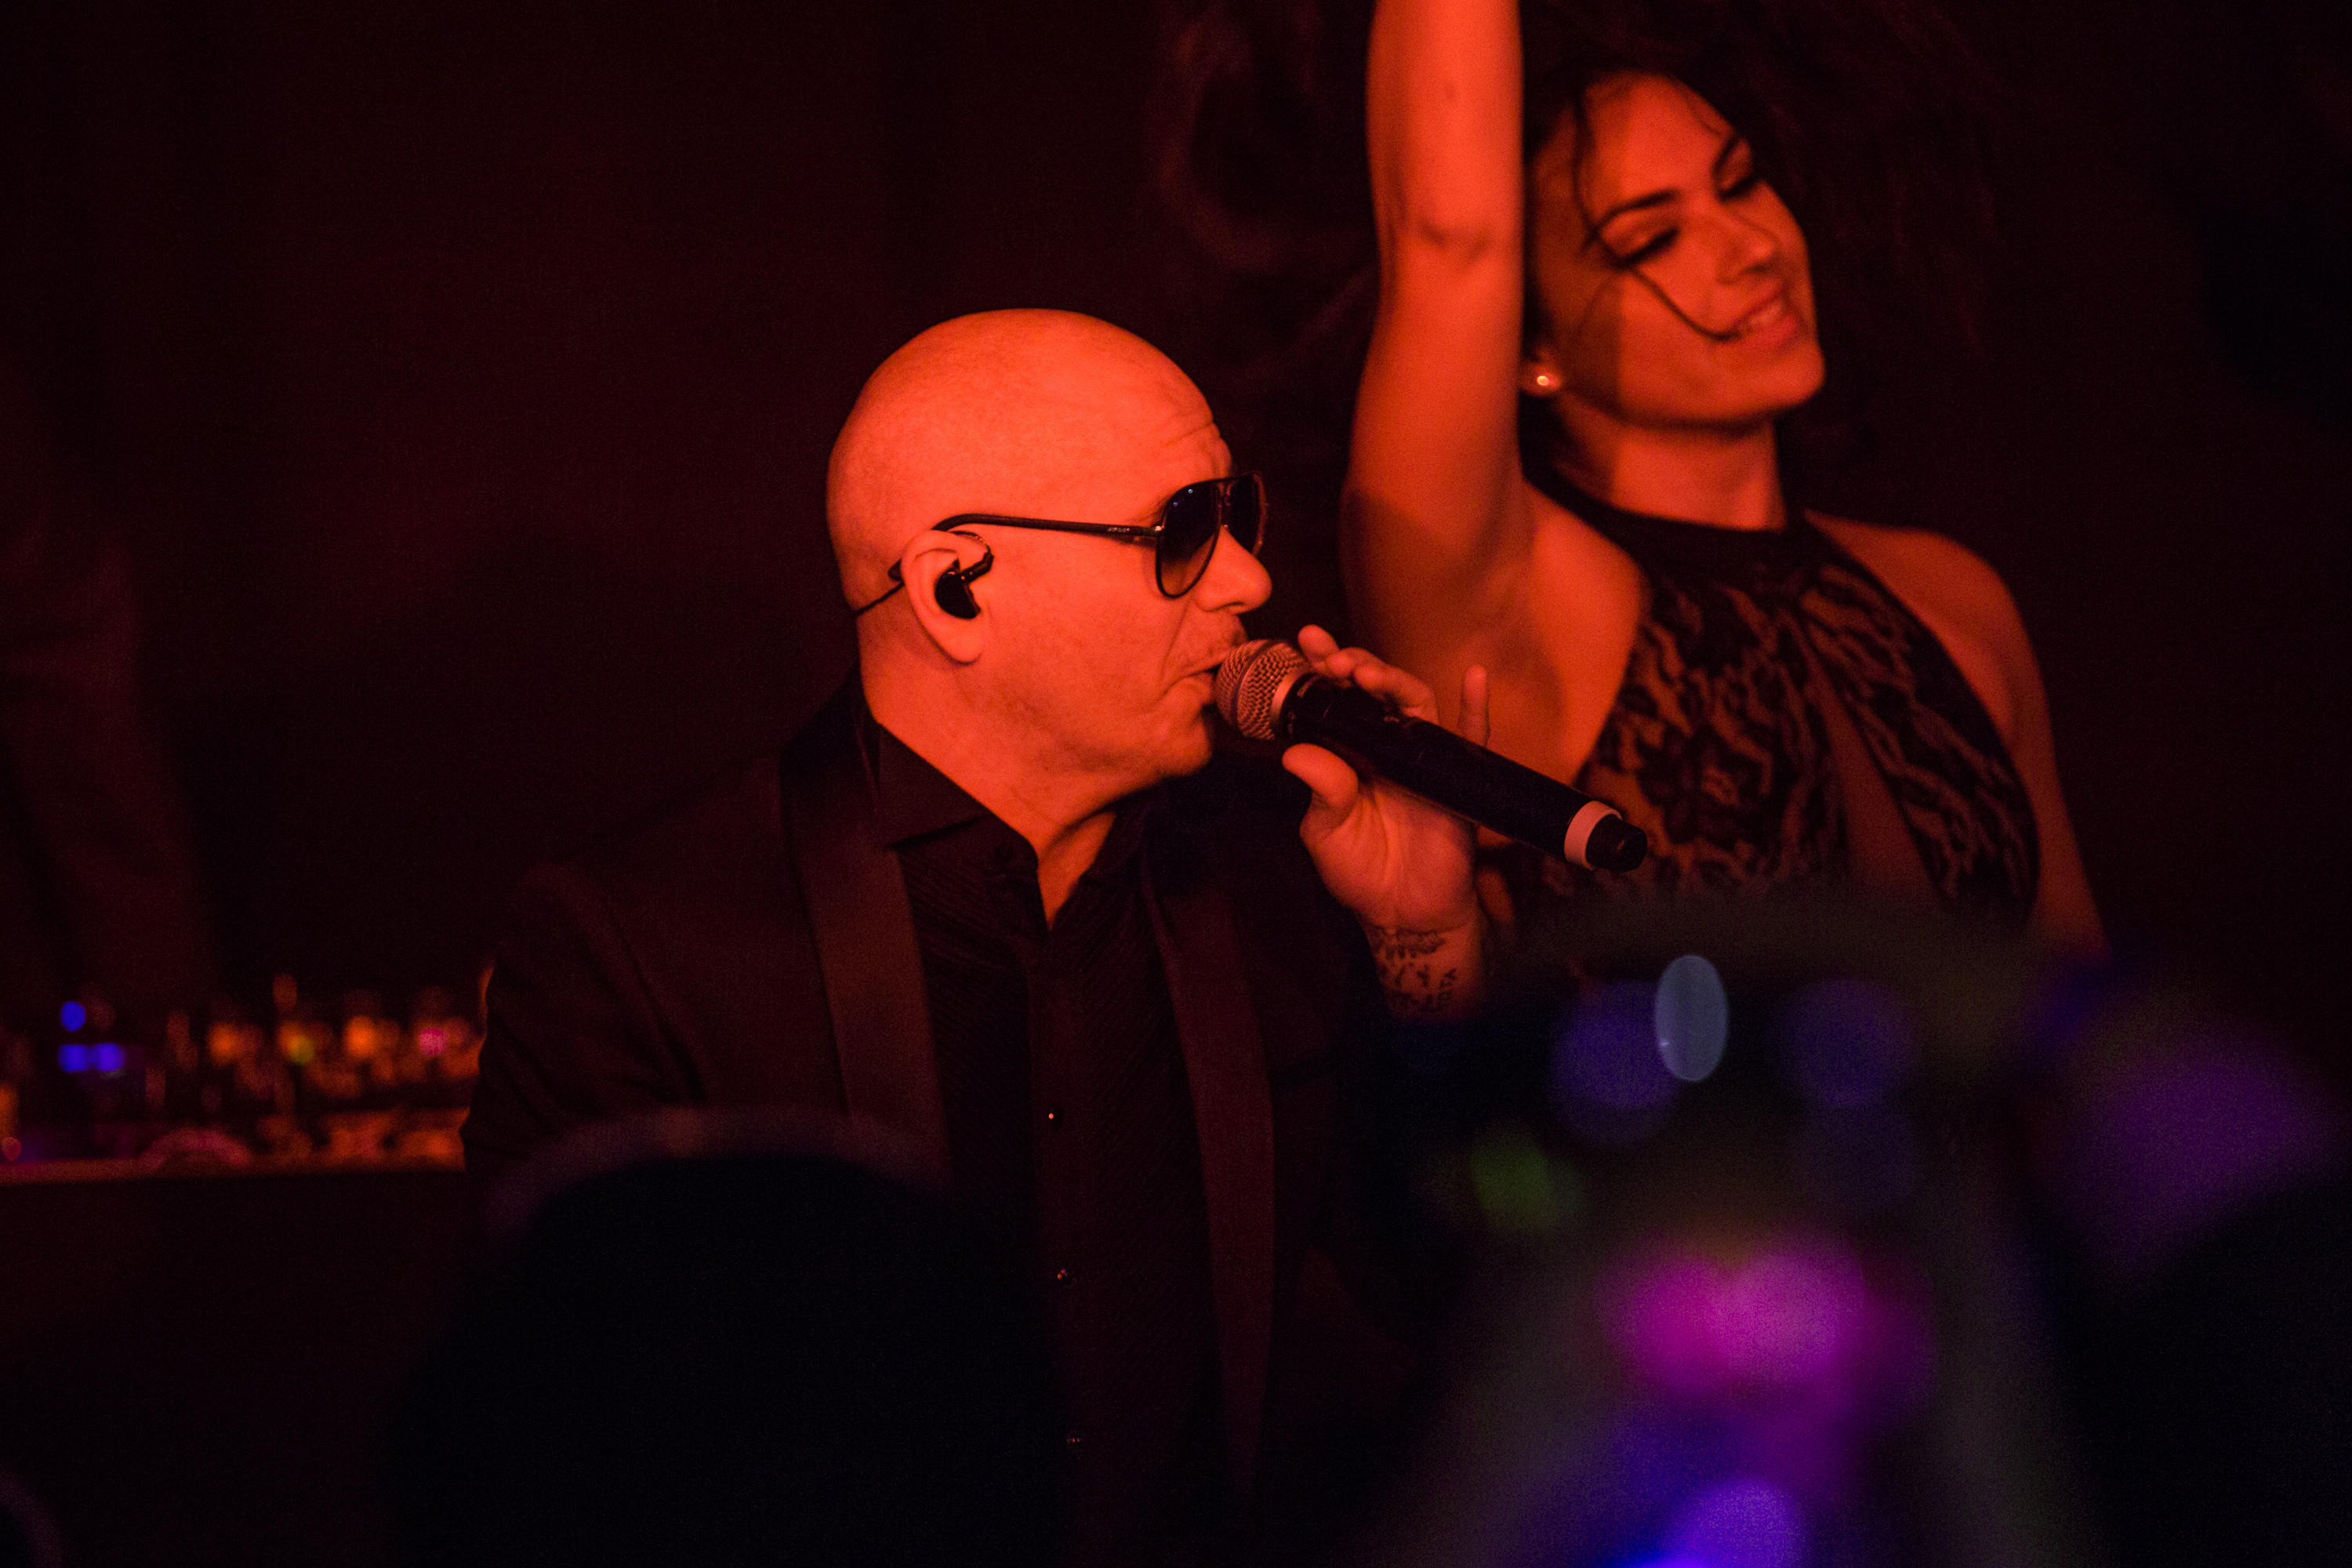 Gnf Executes Las Vegas Event With Performance By Pitbull For Dell